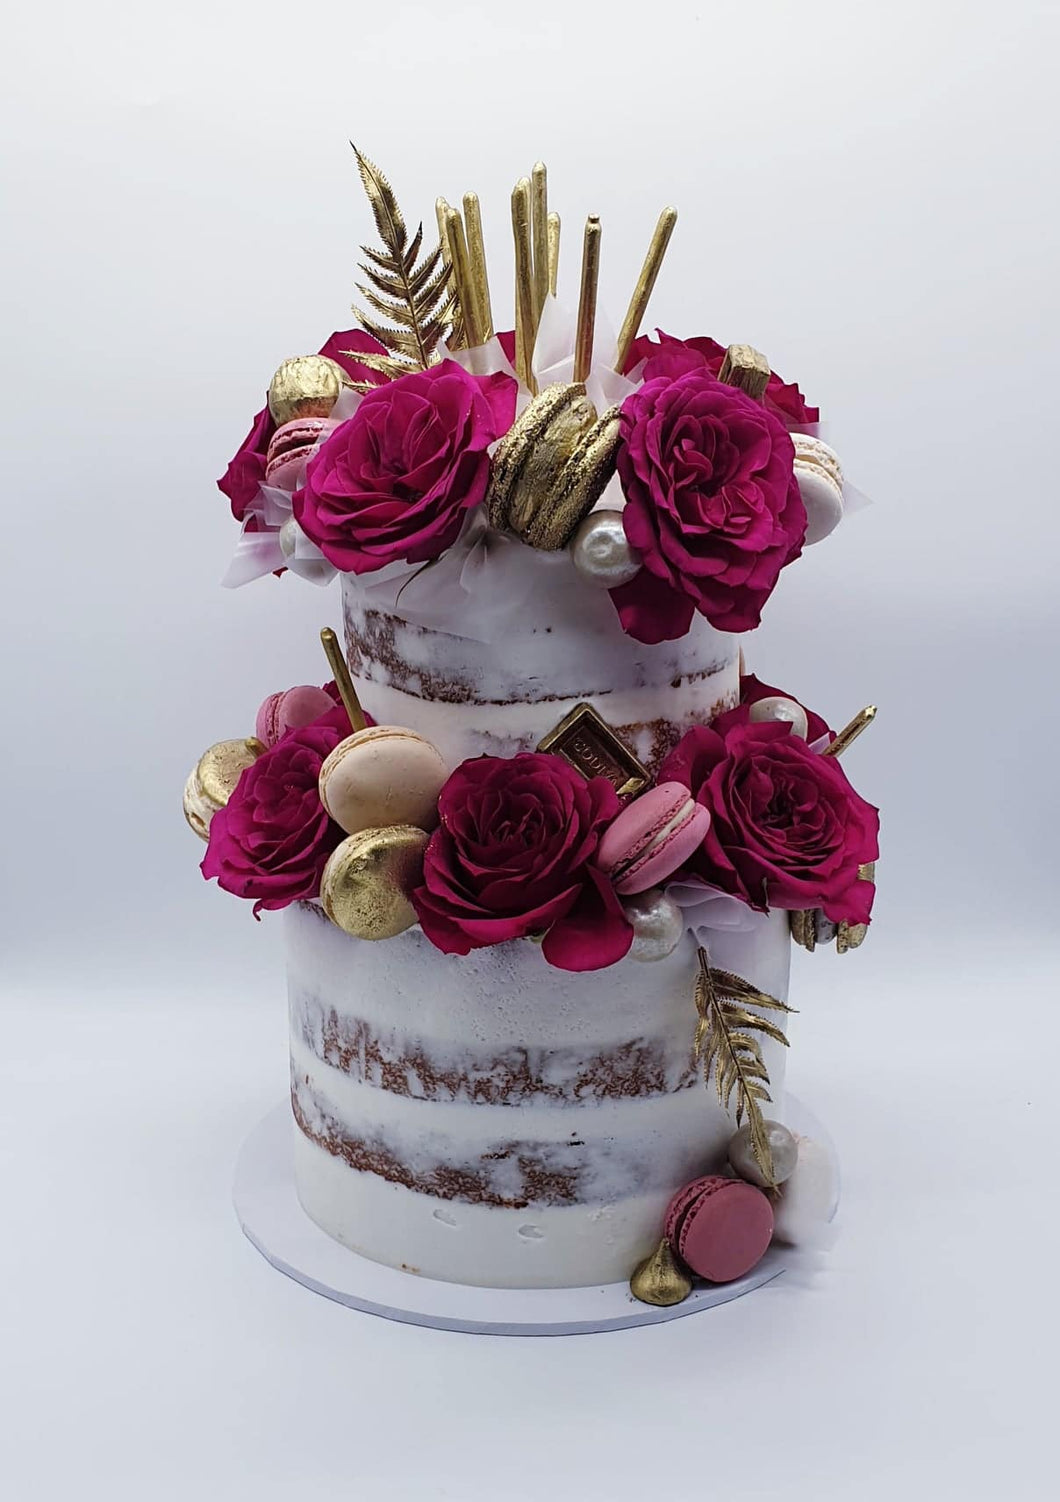 2 Tiered Cakes